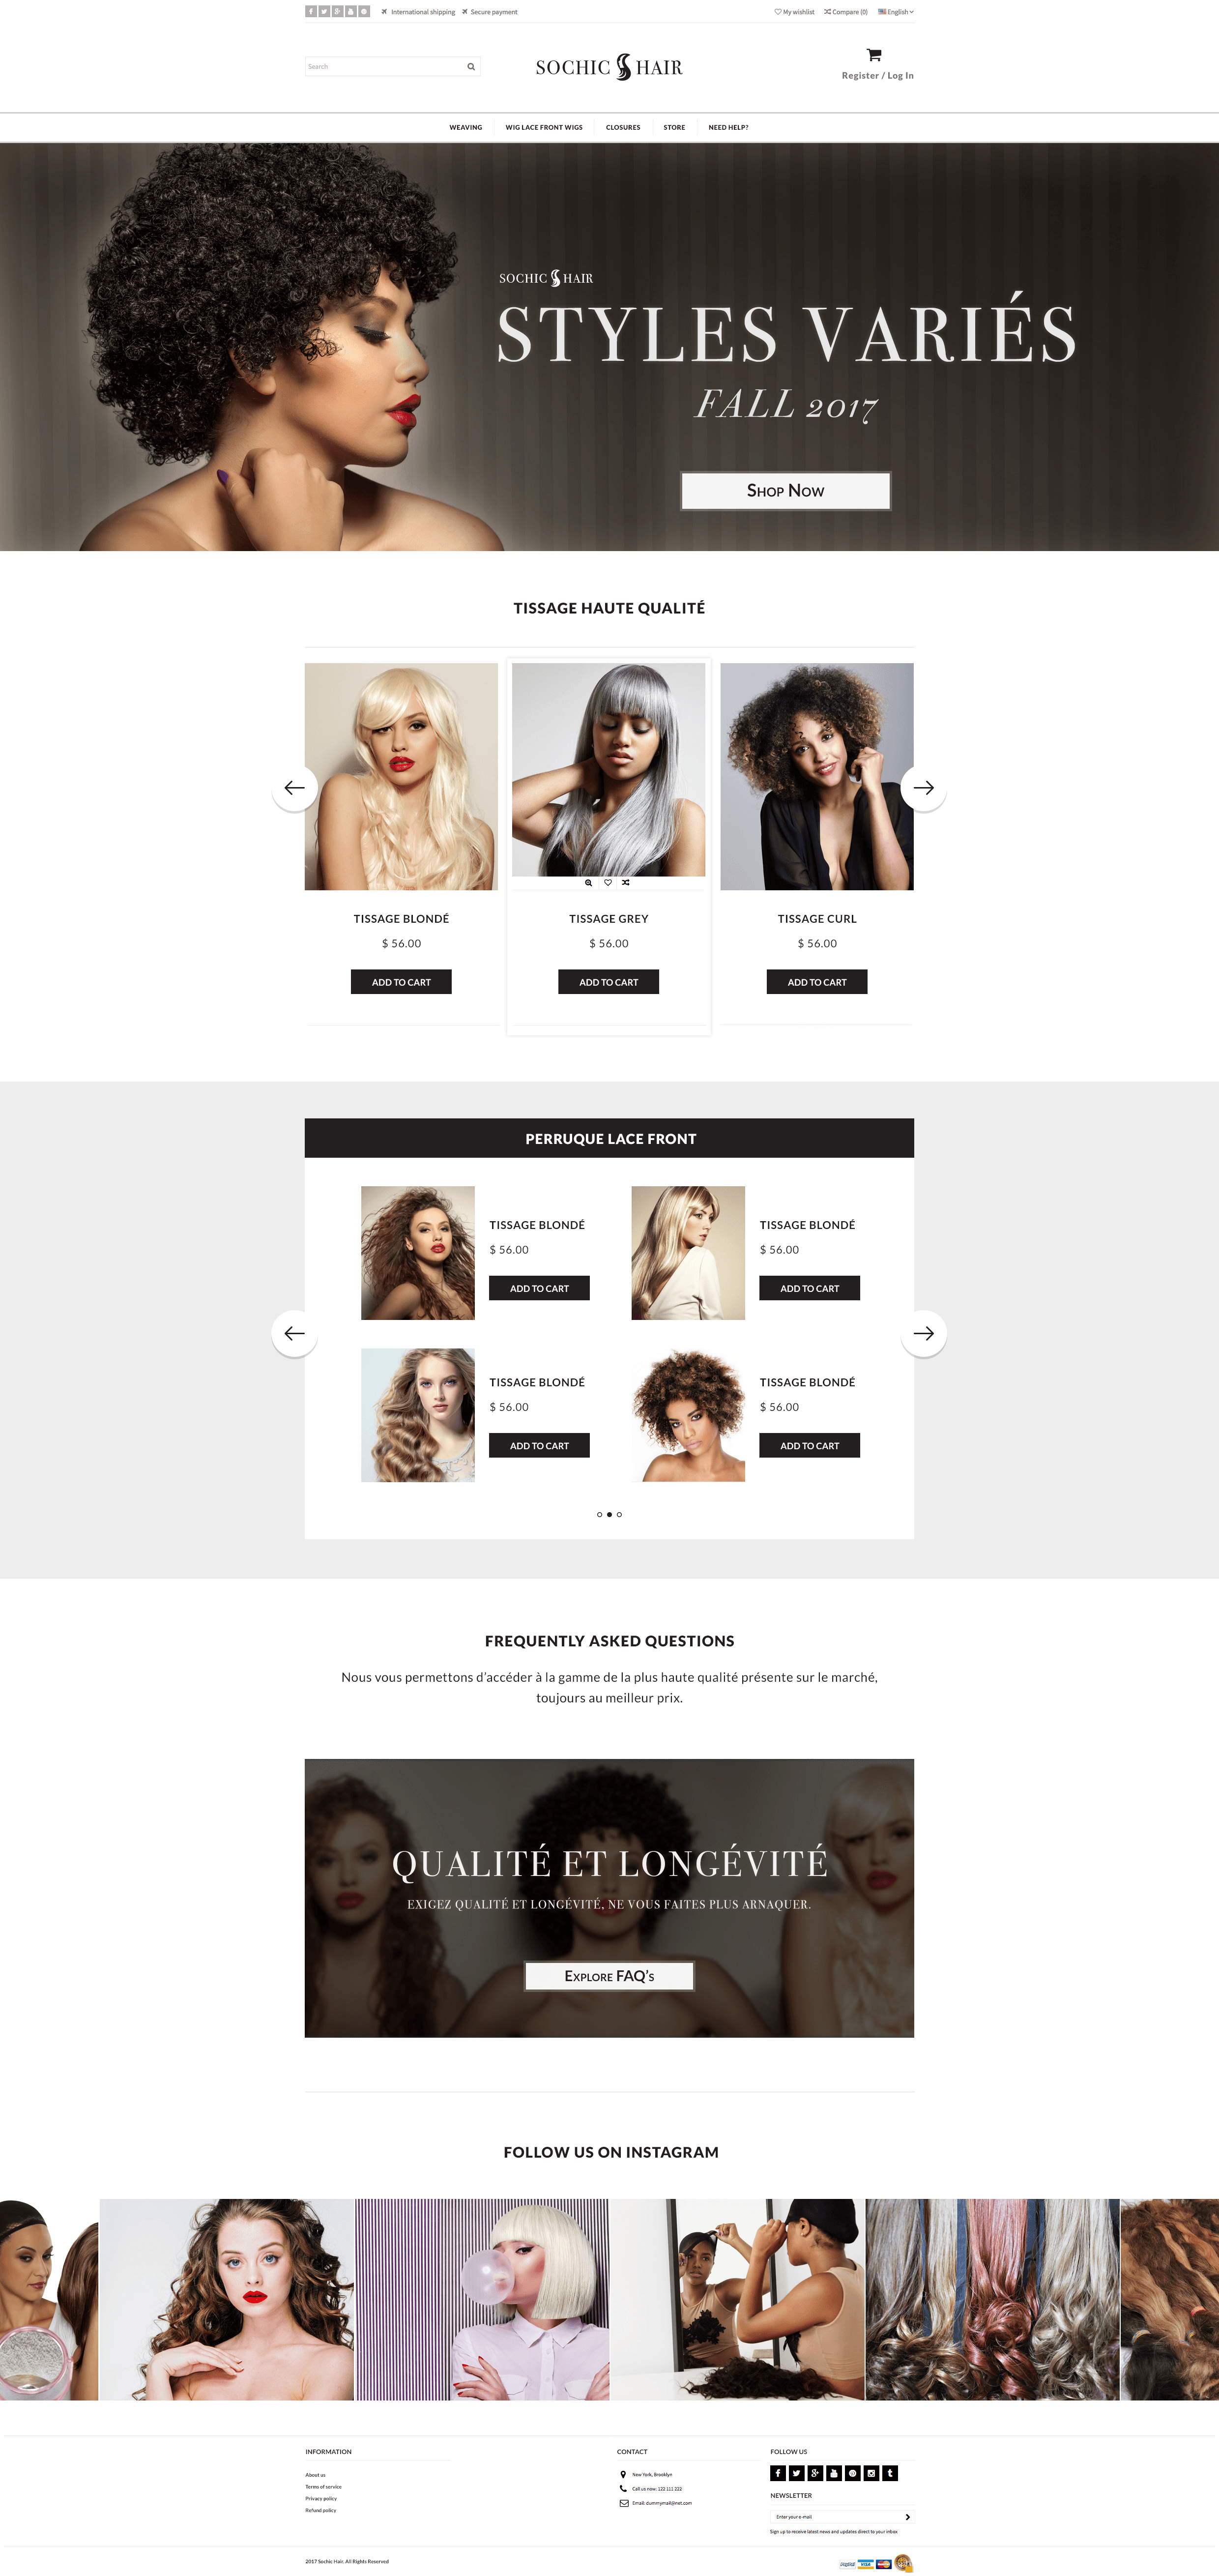 Sochic Hair Full Website Home Page View